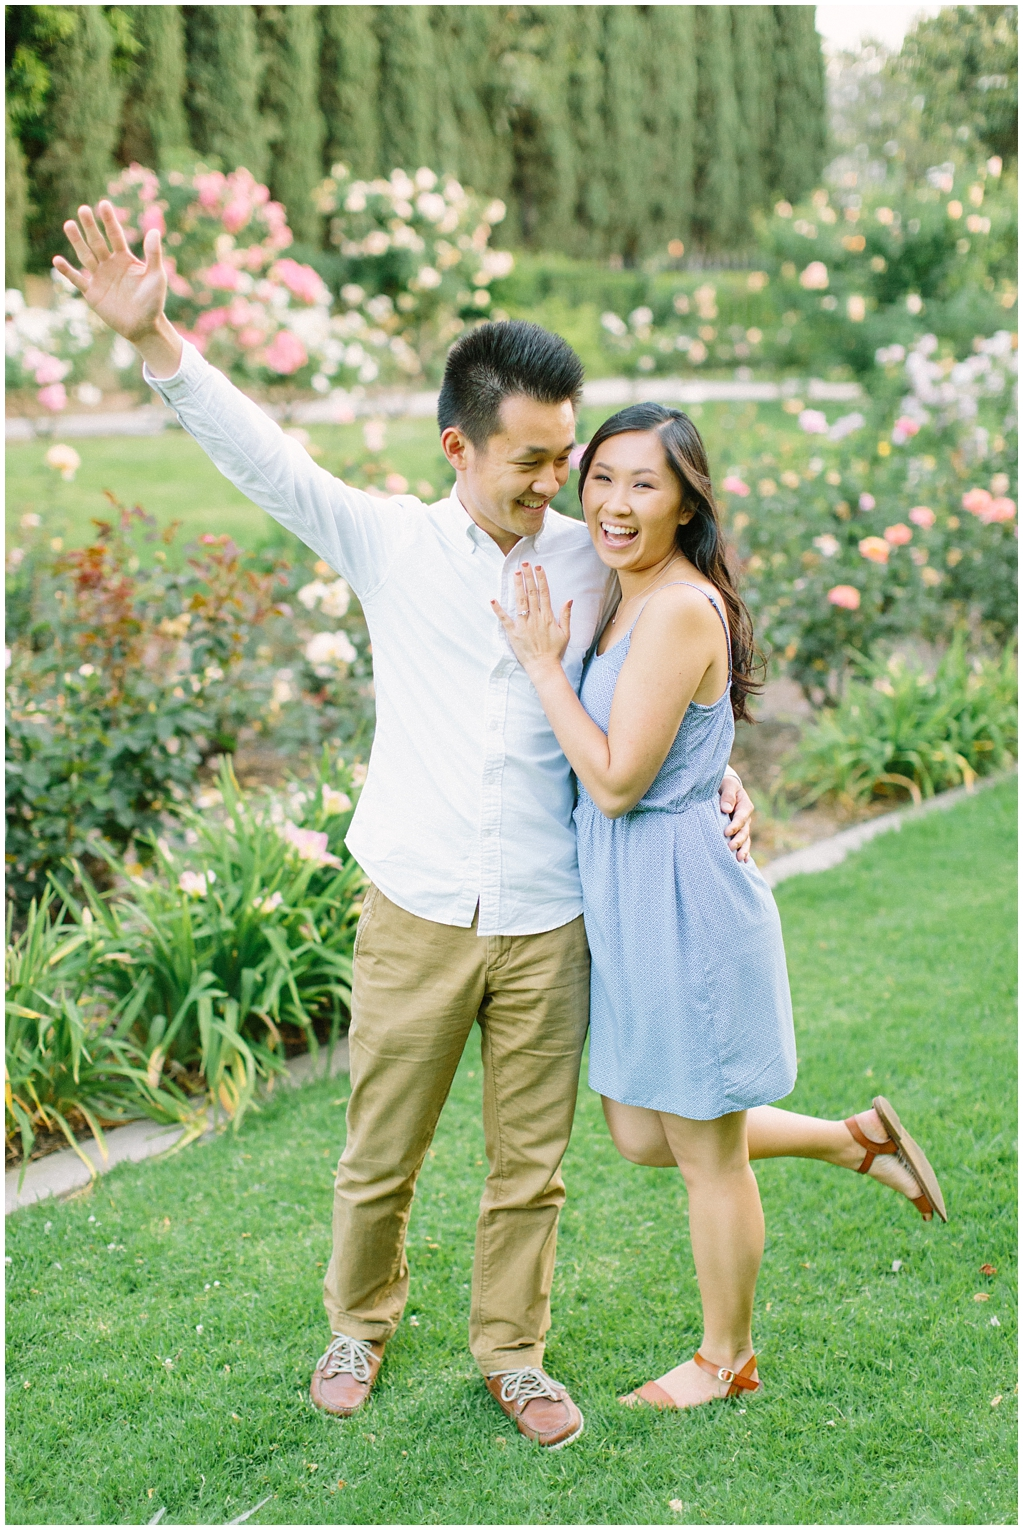 Elegant rose garden engagement shoot at Lacy Park in Pasadena by LA wedding photographer-Madison Ellis Photography (2)